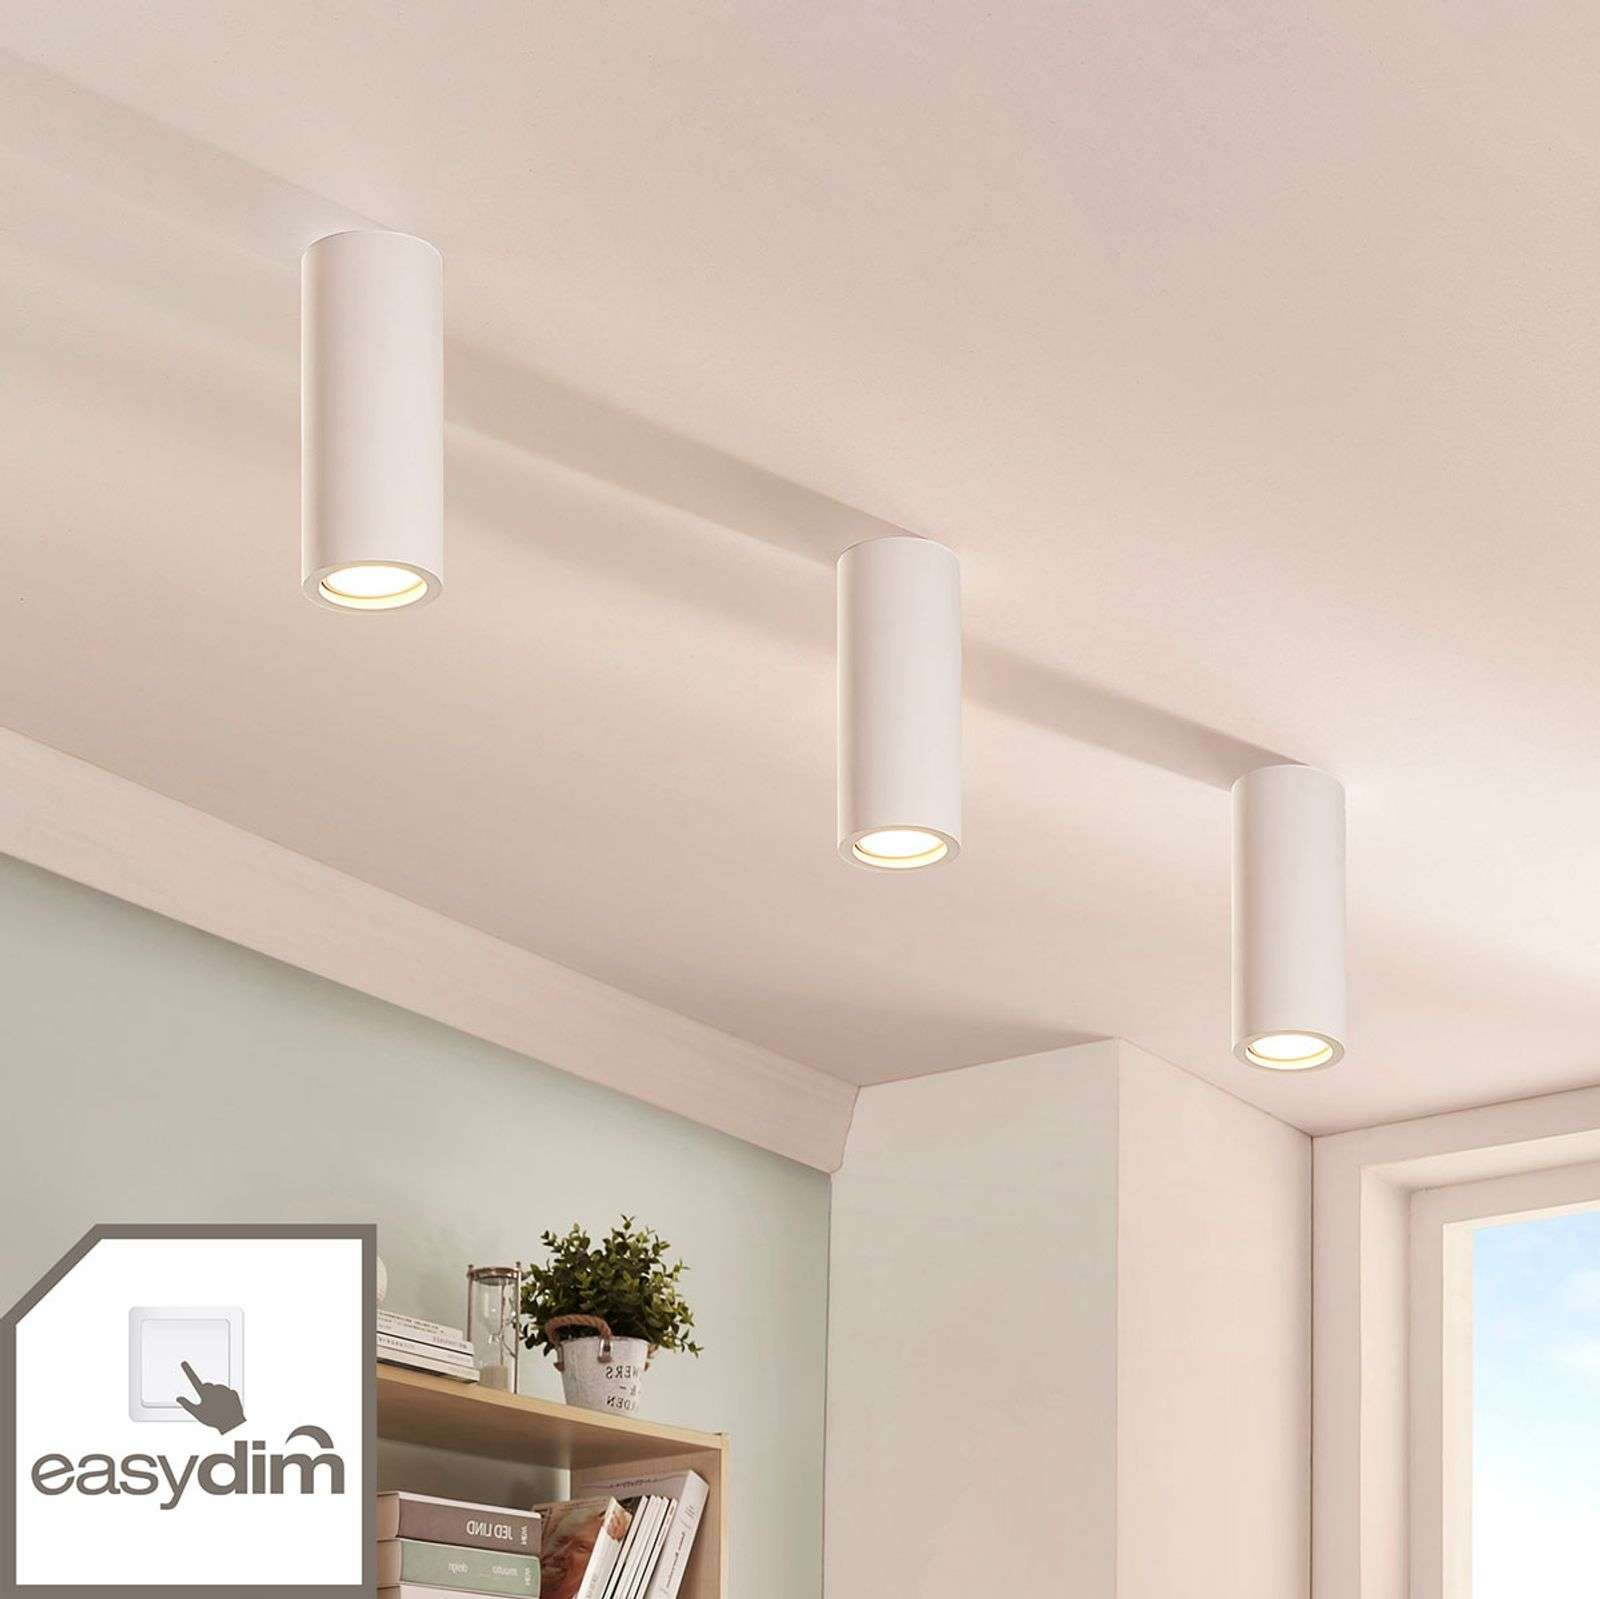 Gips downlight Annelies met easydim LED lamp